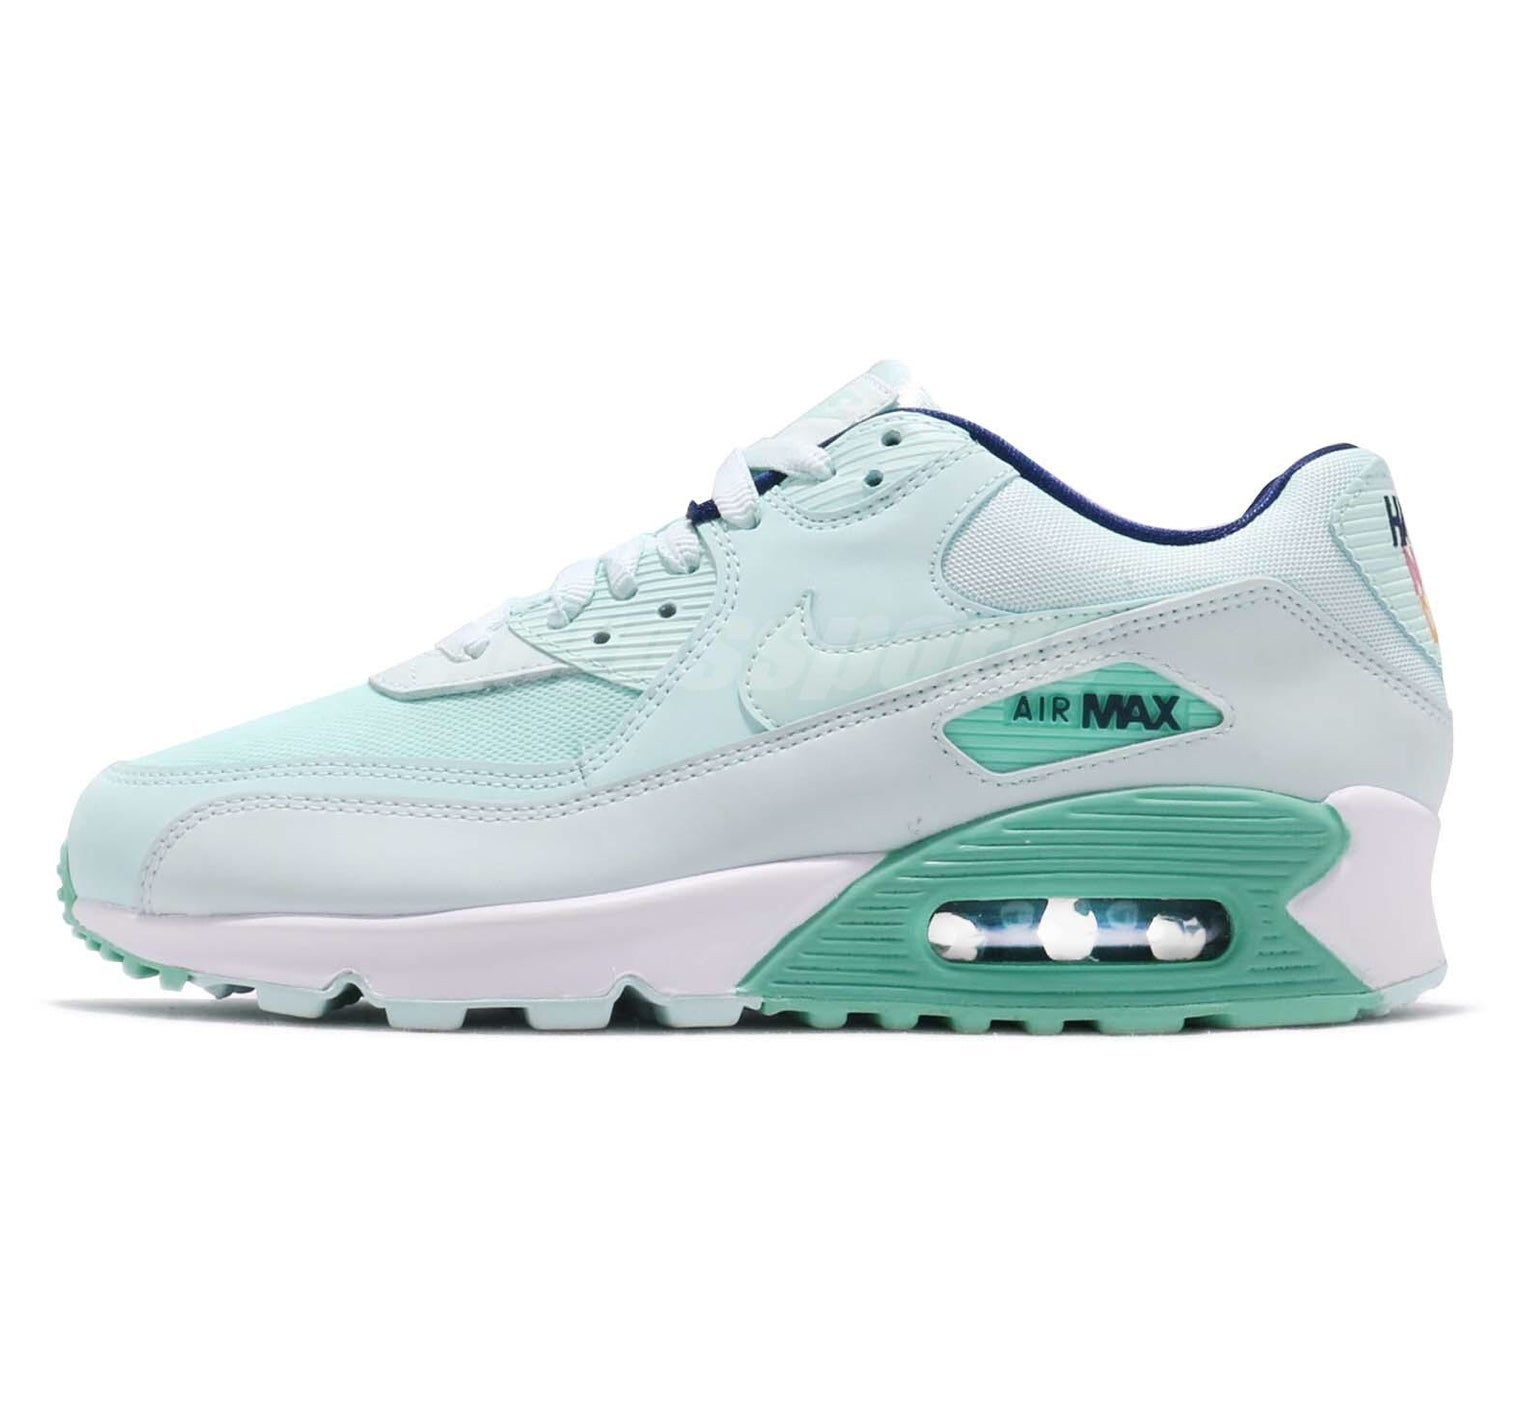 Limited Breathable Nike Air Max 90 Essential Trainer